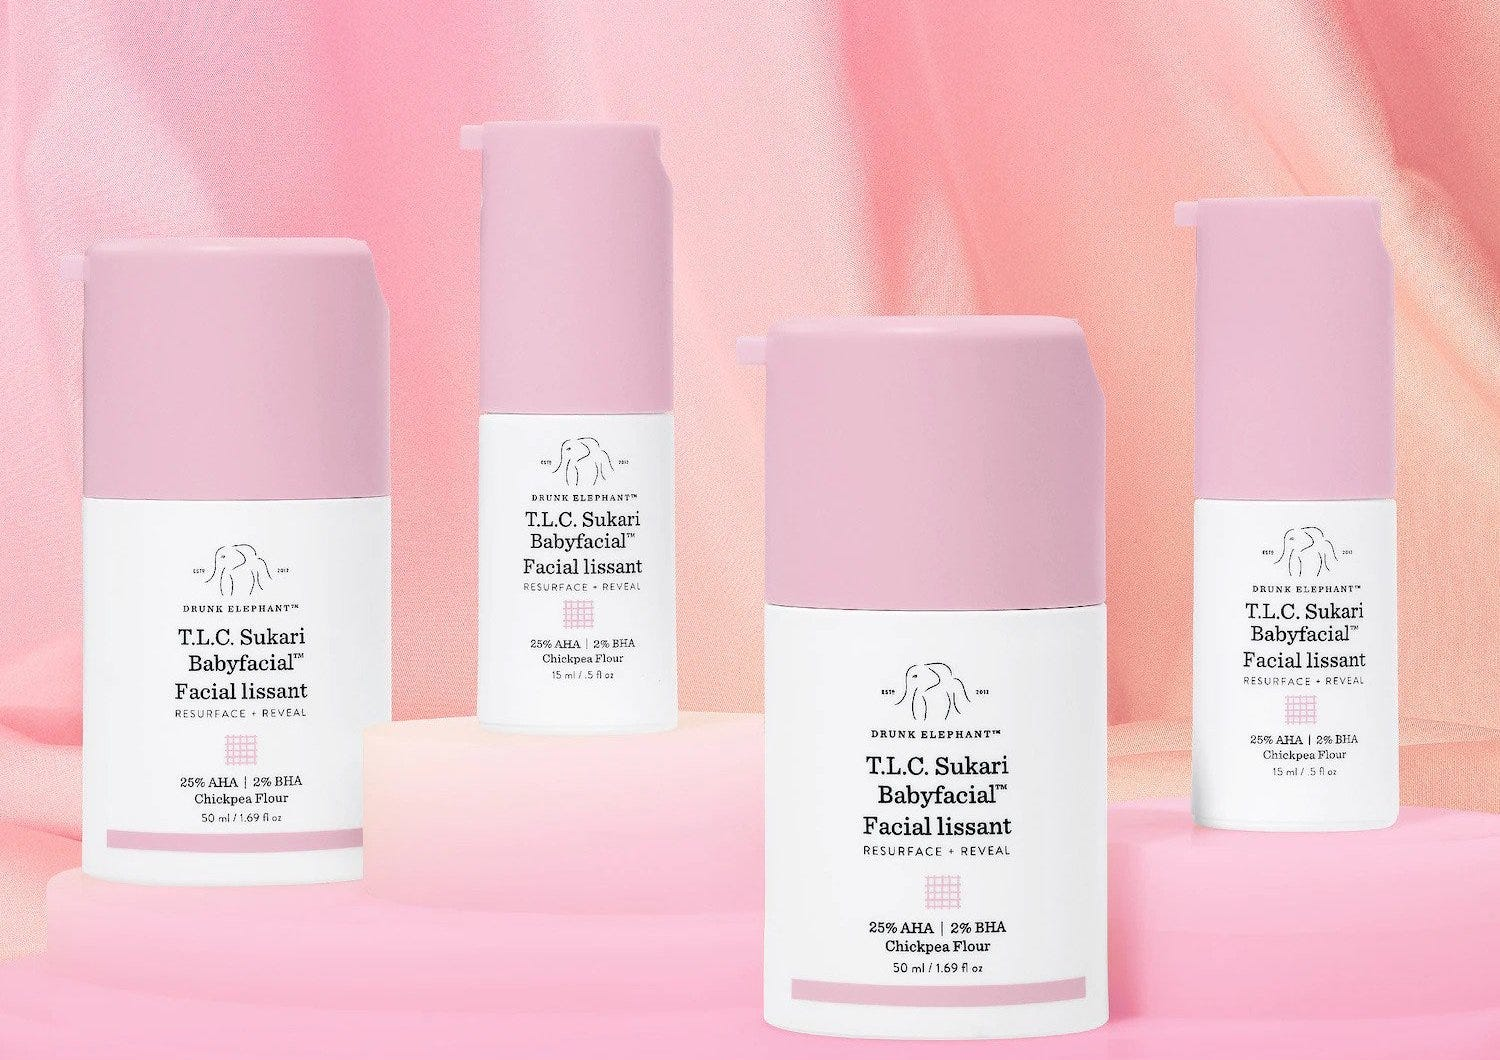 Four white bottles with pink caps on a pink background